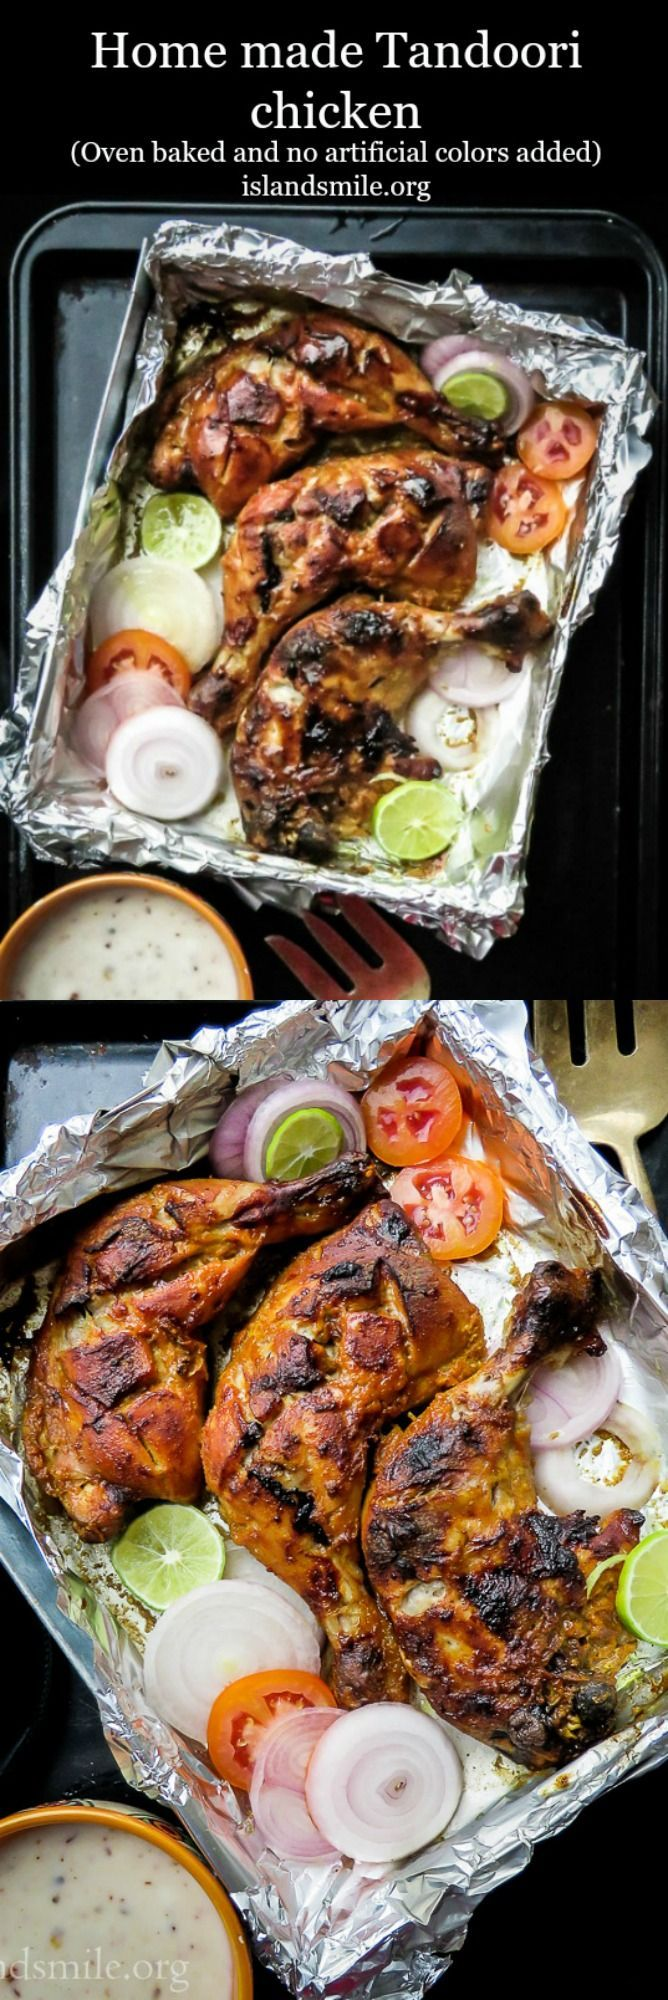 How to make Tandoori chicken at home(oven baked). Have your own Indian themed dinner from the comfort of your home with a Tandoori chicken taking center stage on your table.